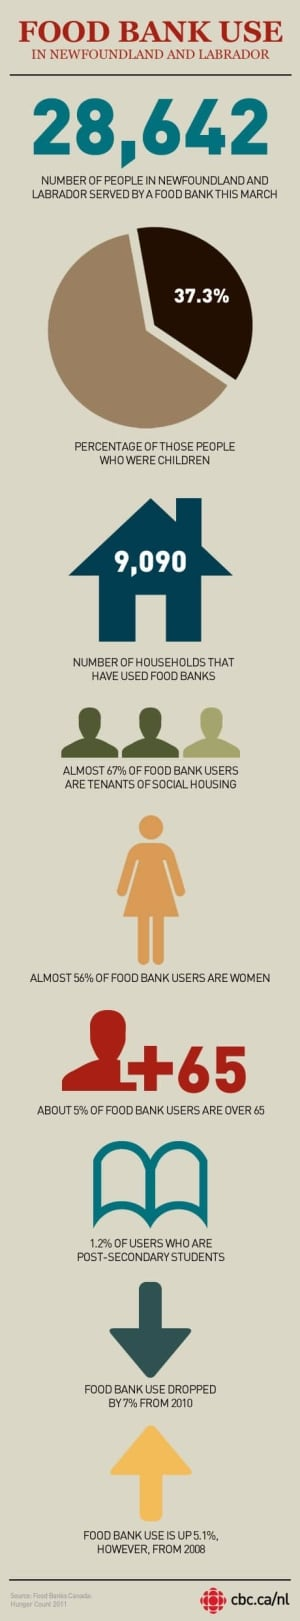 nl-food-bank-infographic